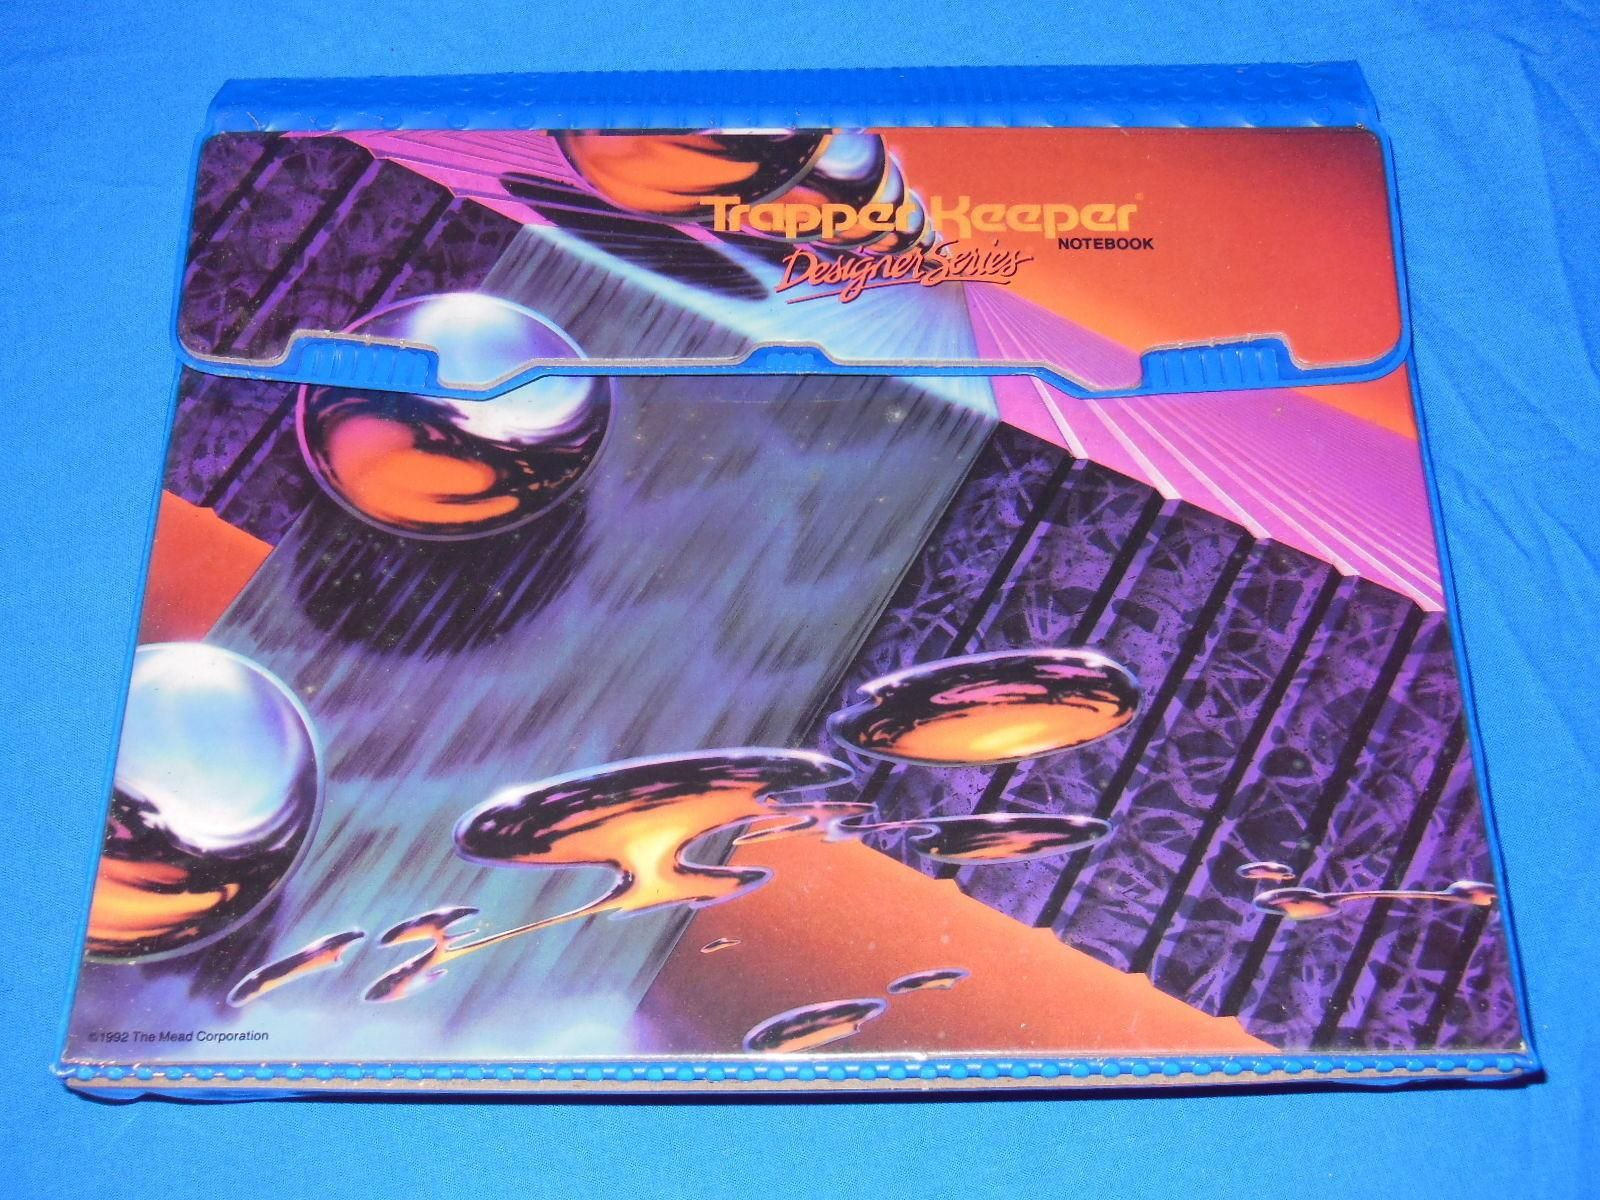 90s poster design - This Is The Exact Trapper Keeper I Had In The Early 90s